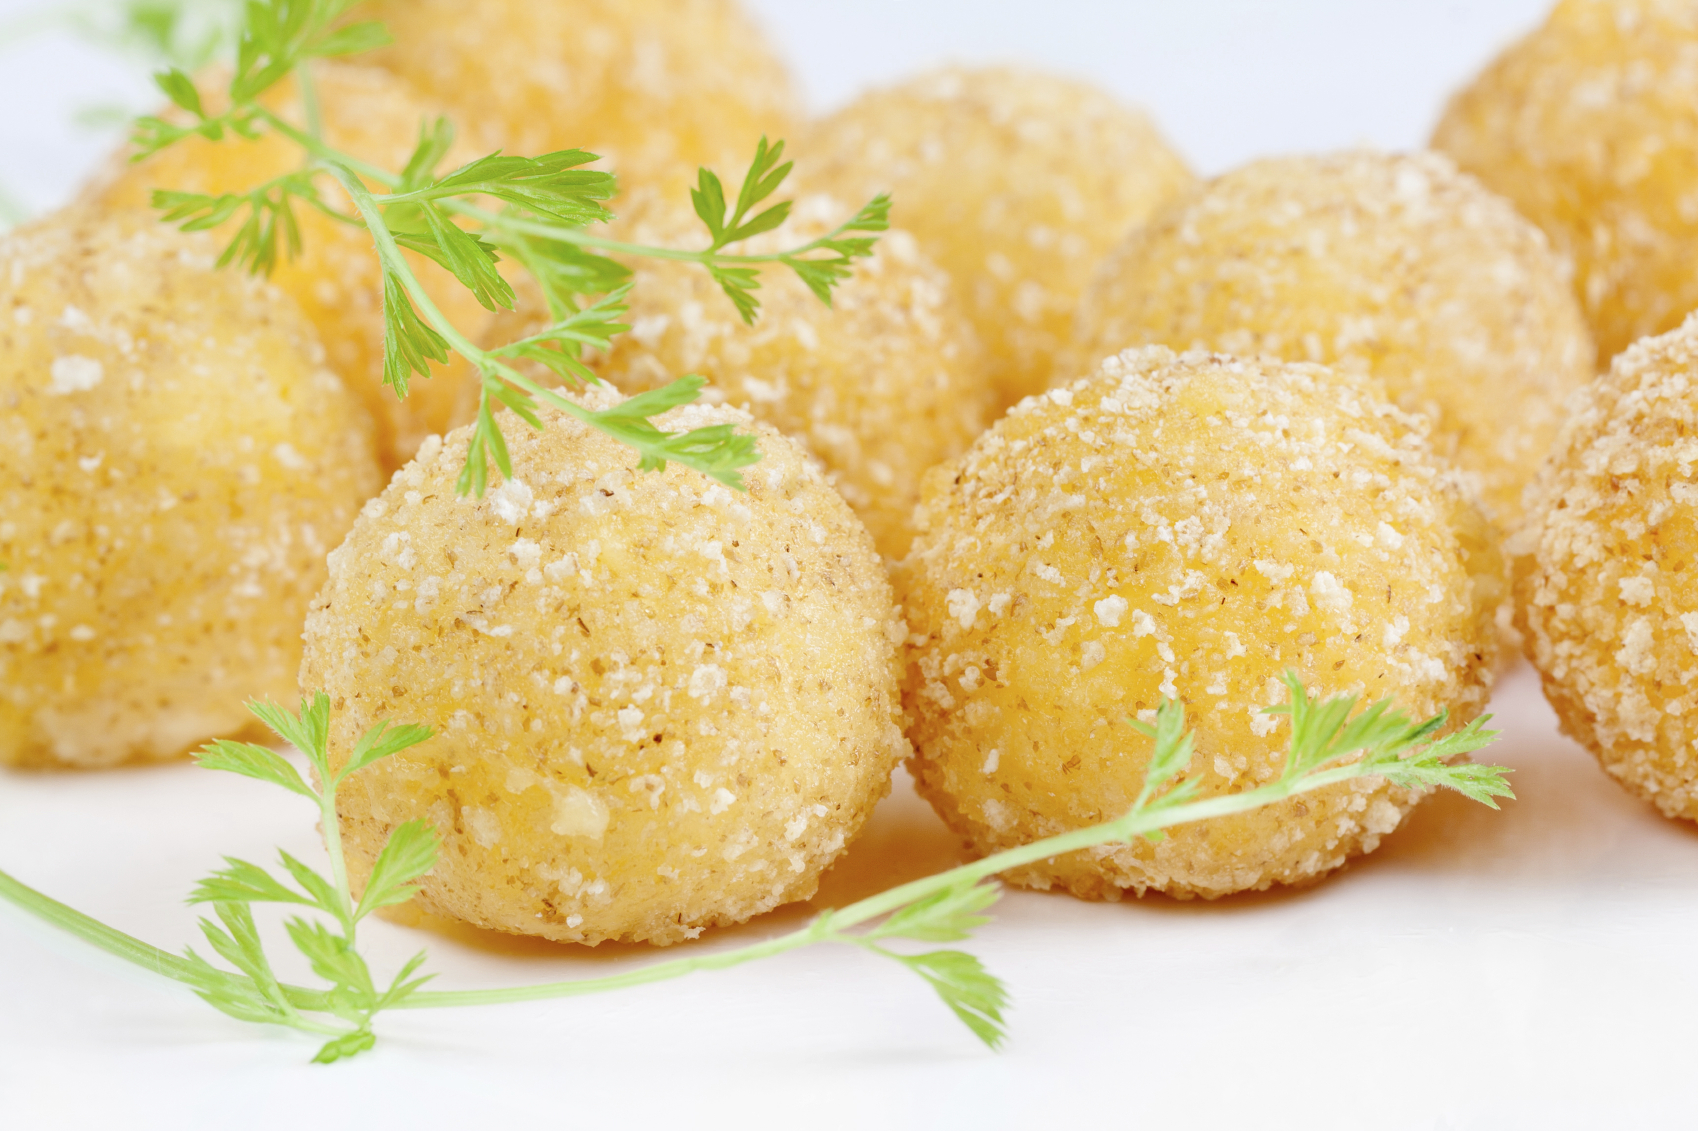 Aubergine balls filled with cheese